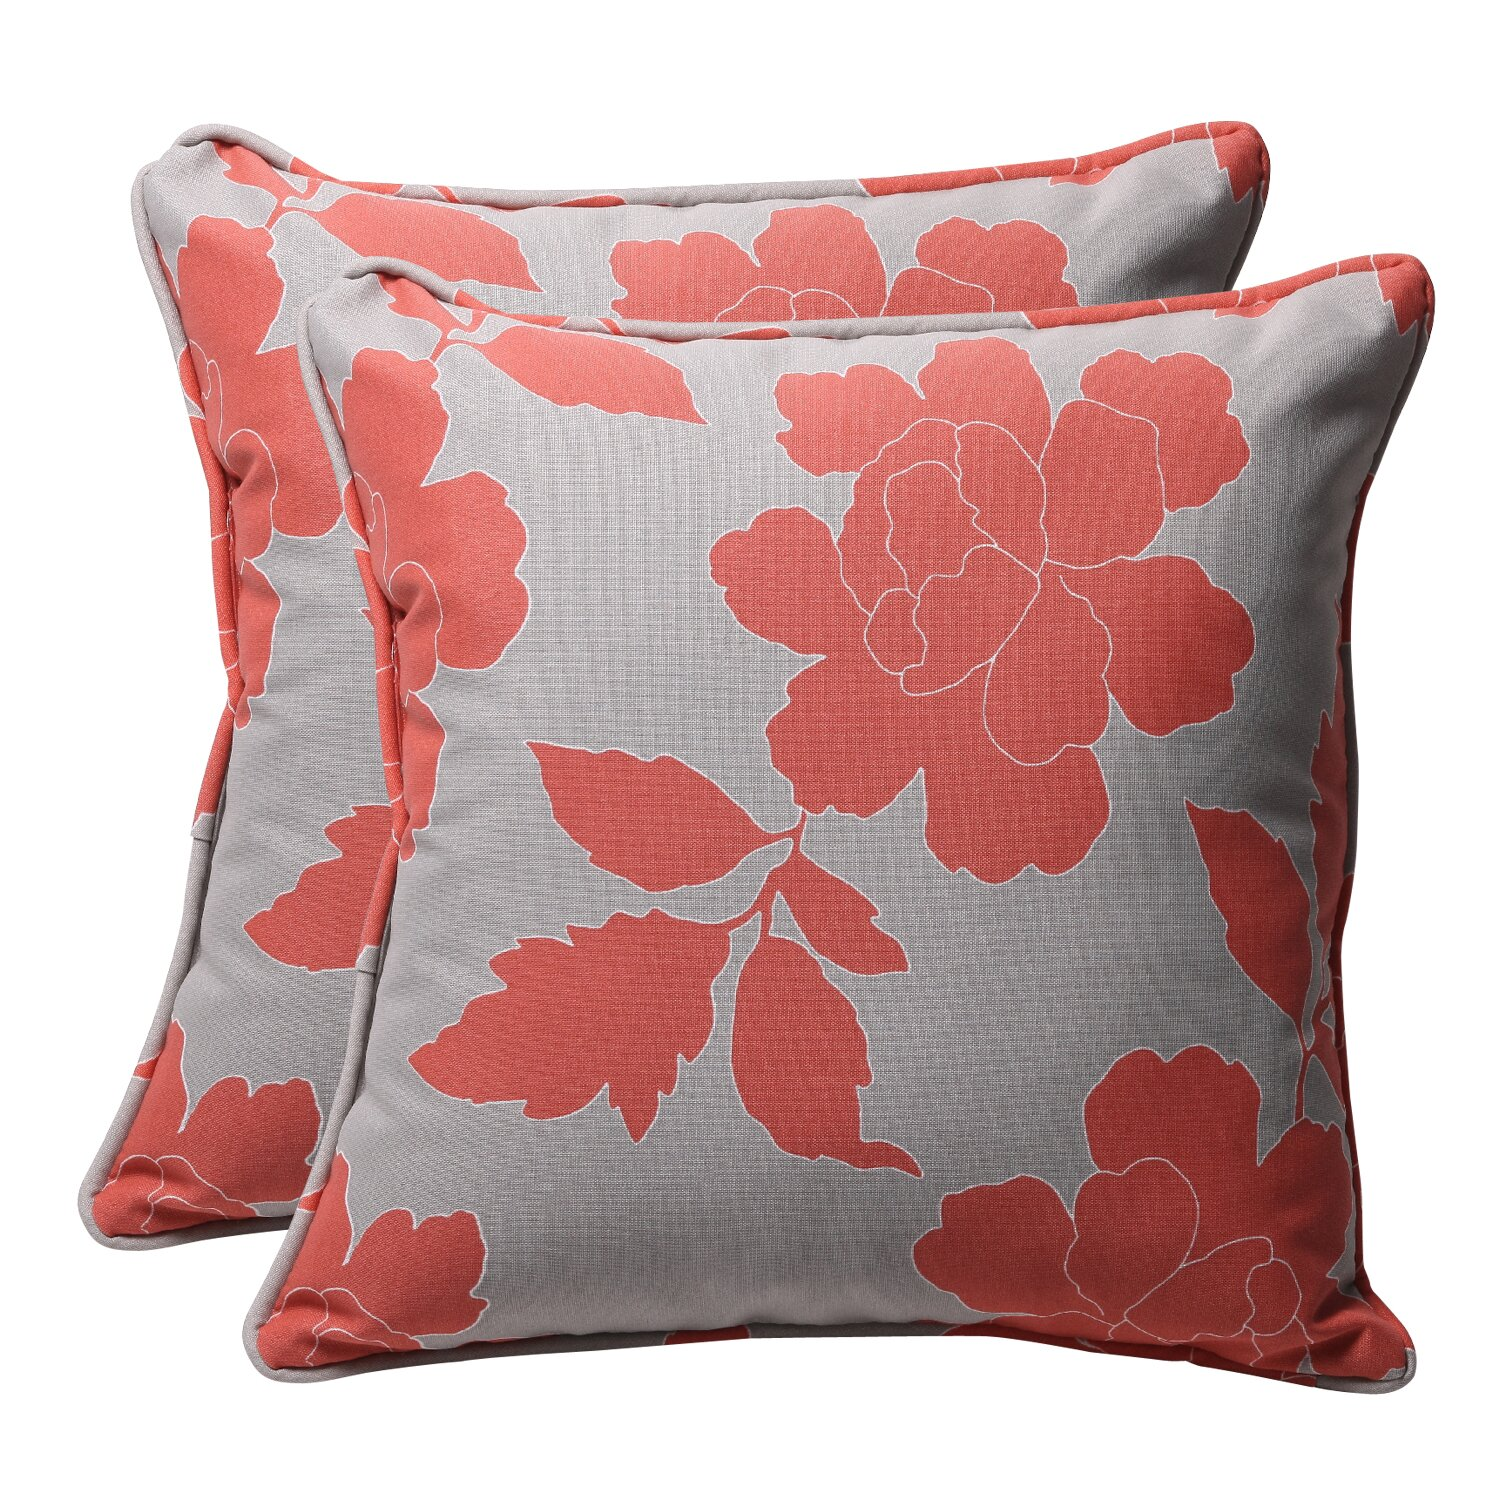 Decorative Pillow Wayfair : Darby Home Co Purlles Outdoor Throw Pillow & Reviews Wayfair